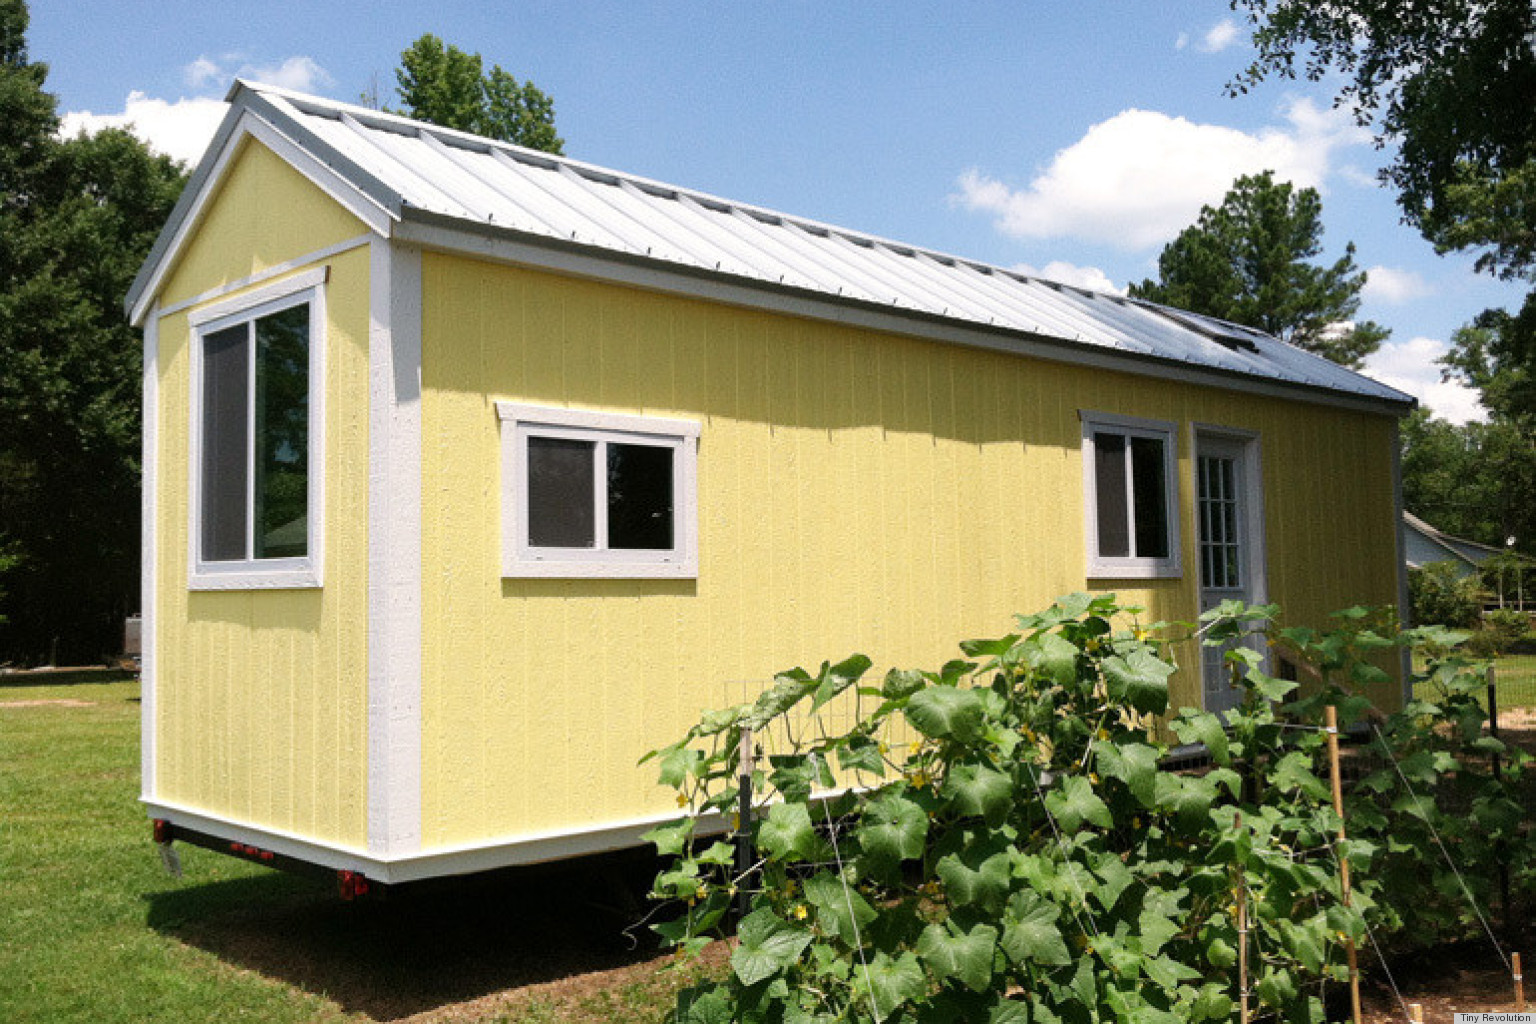 20 tiny homes from around the world photos video huffpost. Black Bedroom Furniture Sets. Home Design Ideas